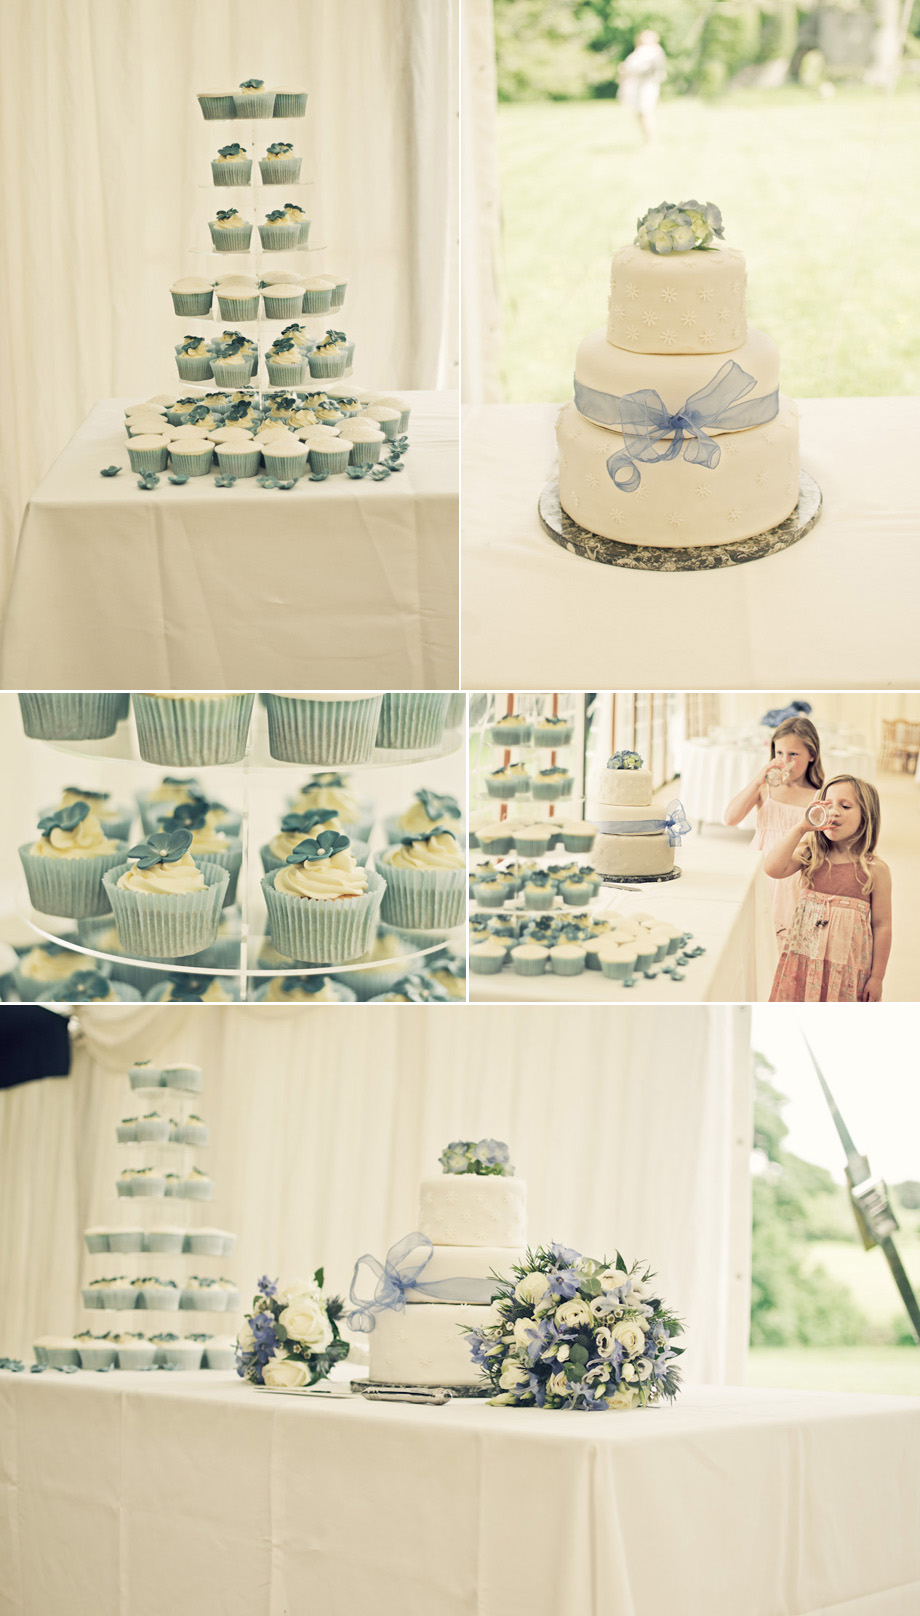 hertfordshire wedding cakes